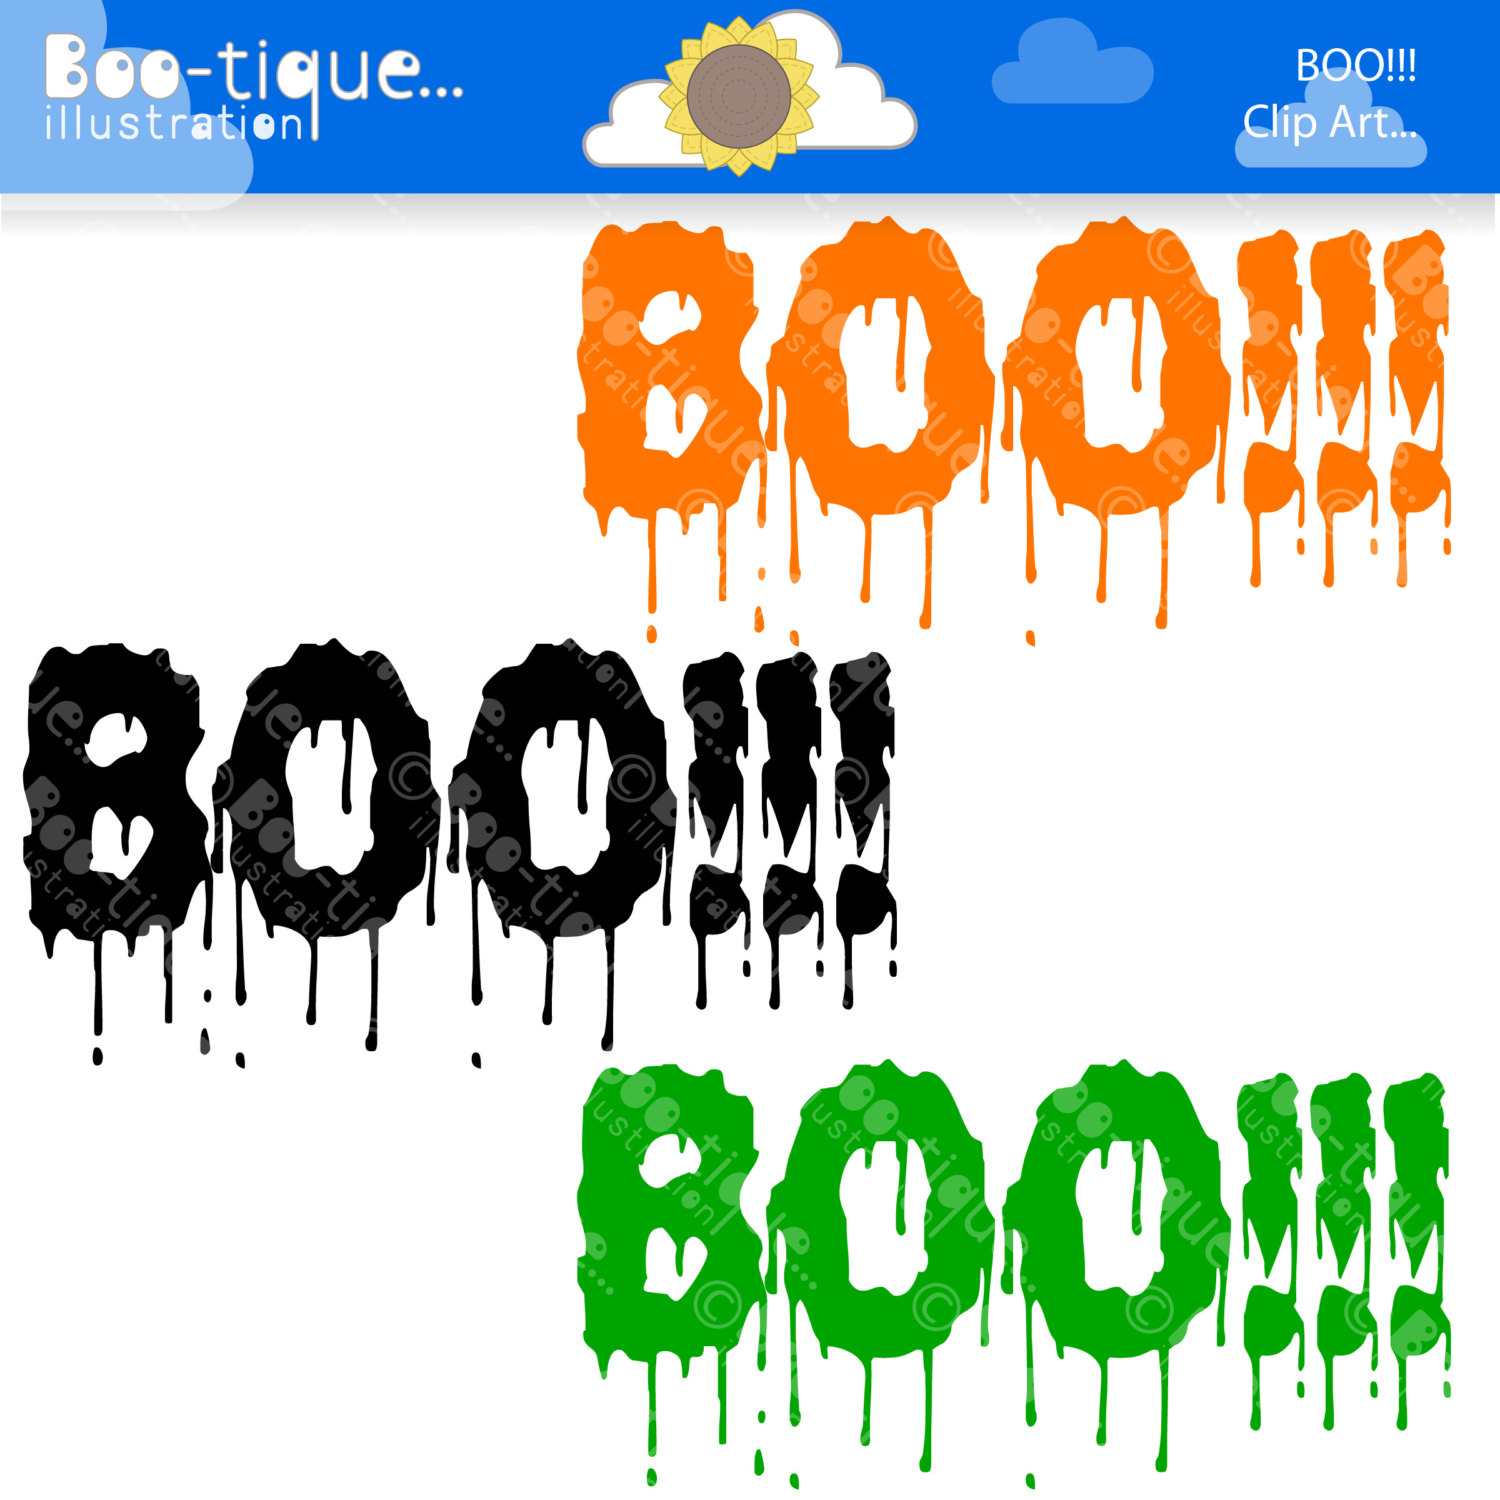 1500x1500 Halloween Clipart. Halloween Clip Art For Instant Download. Boo